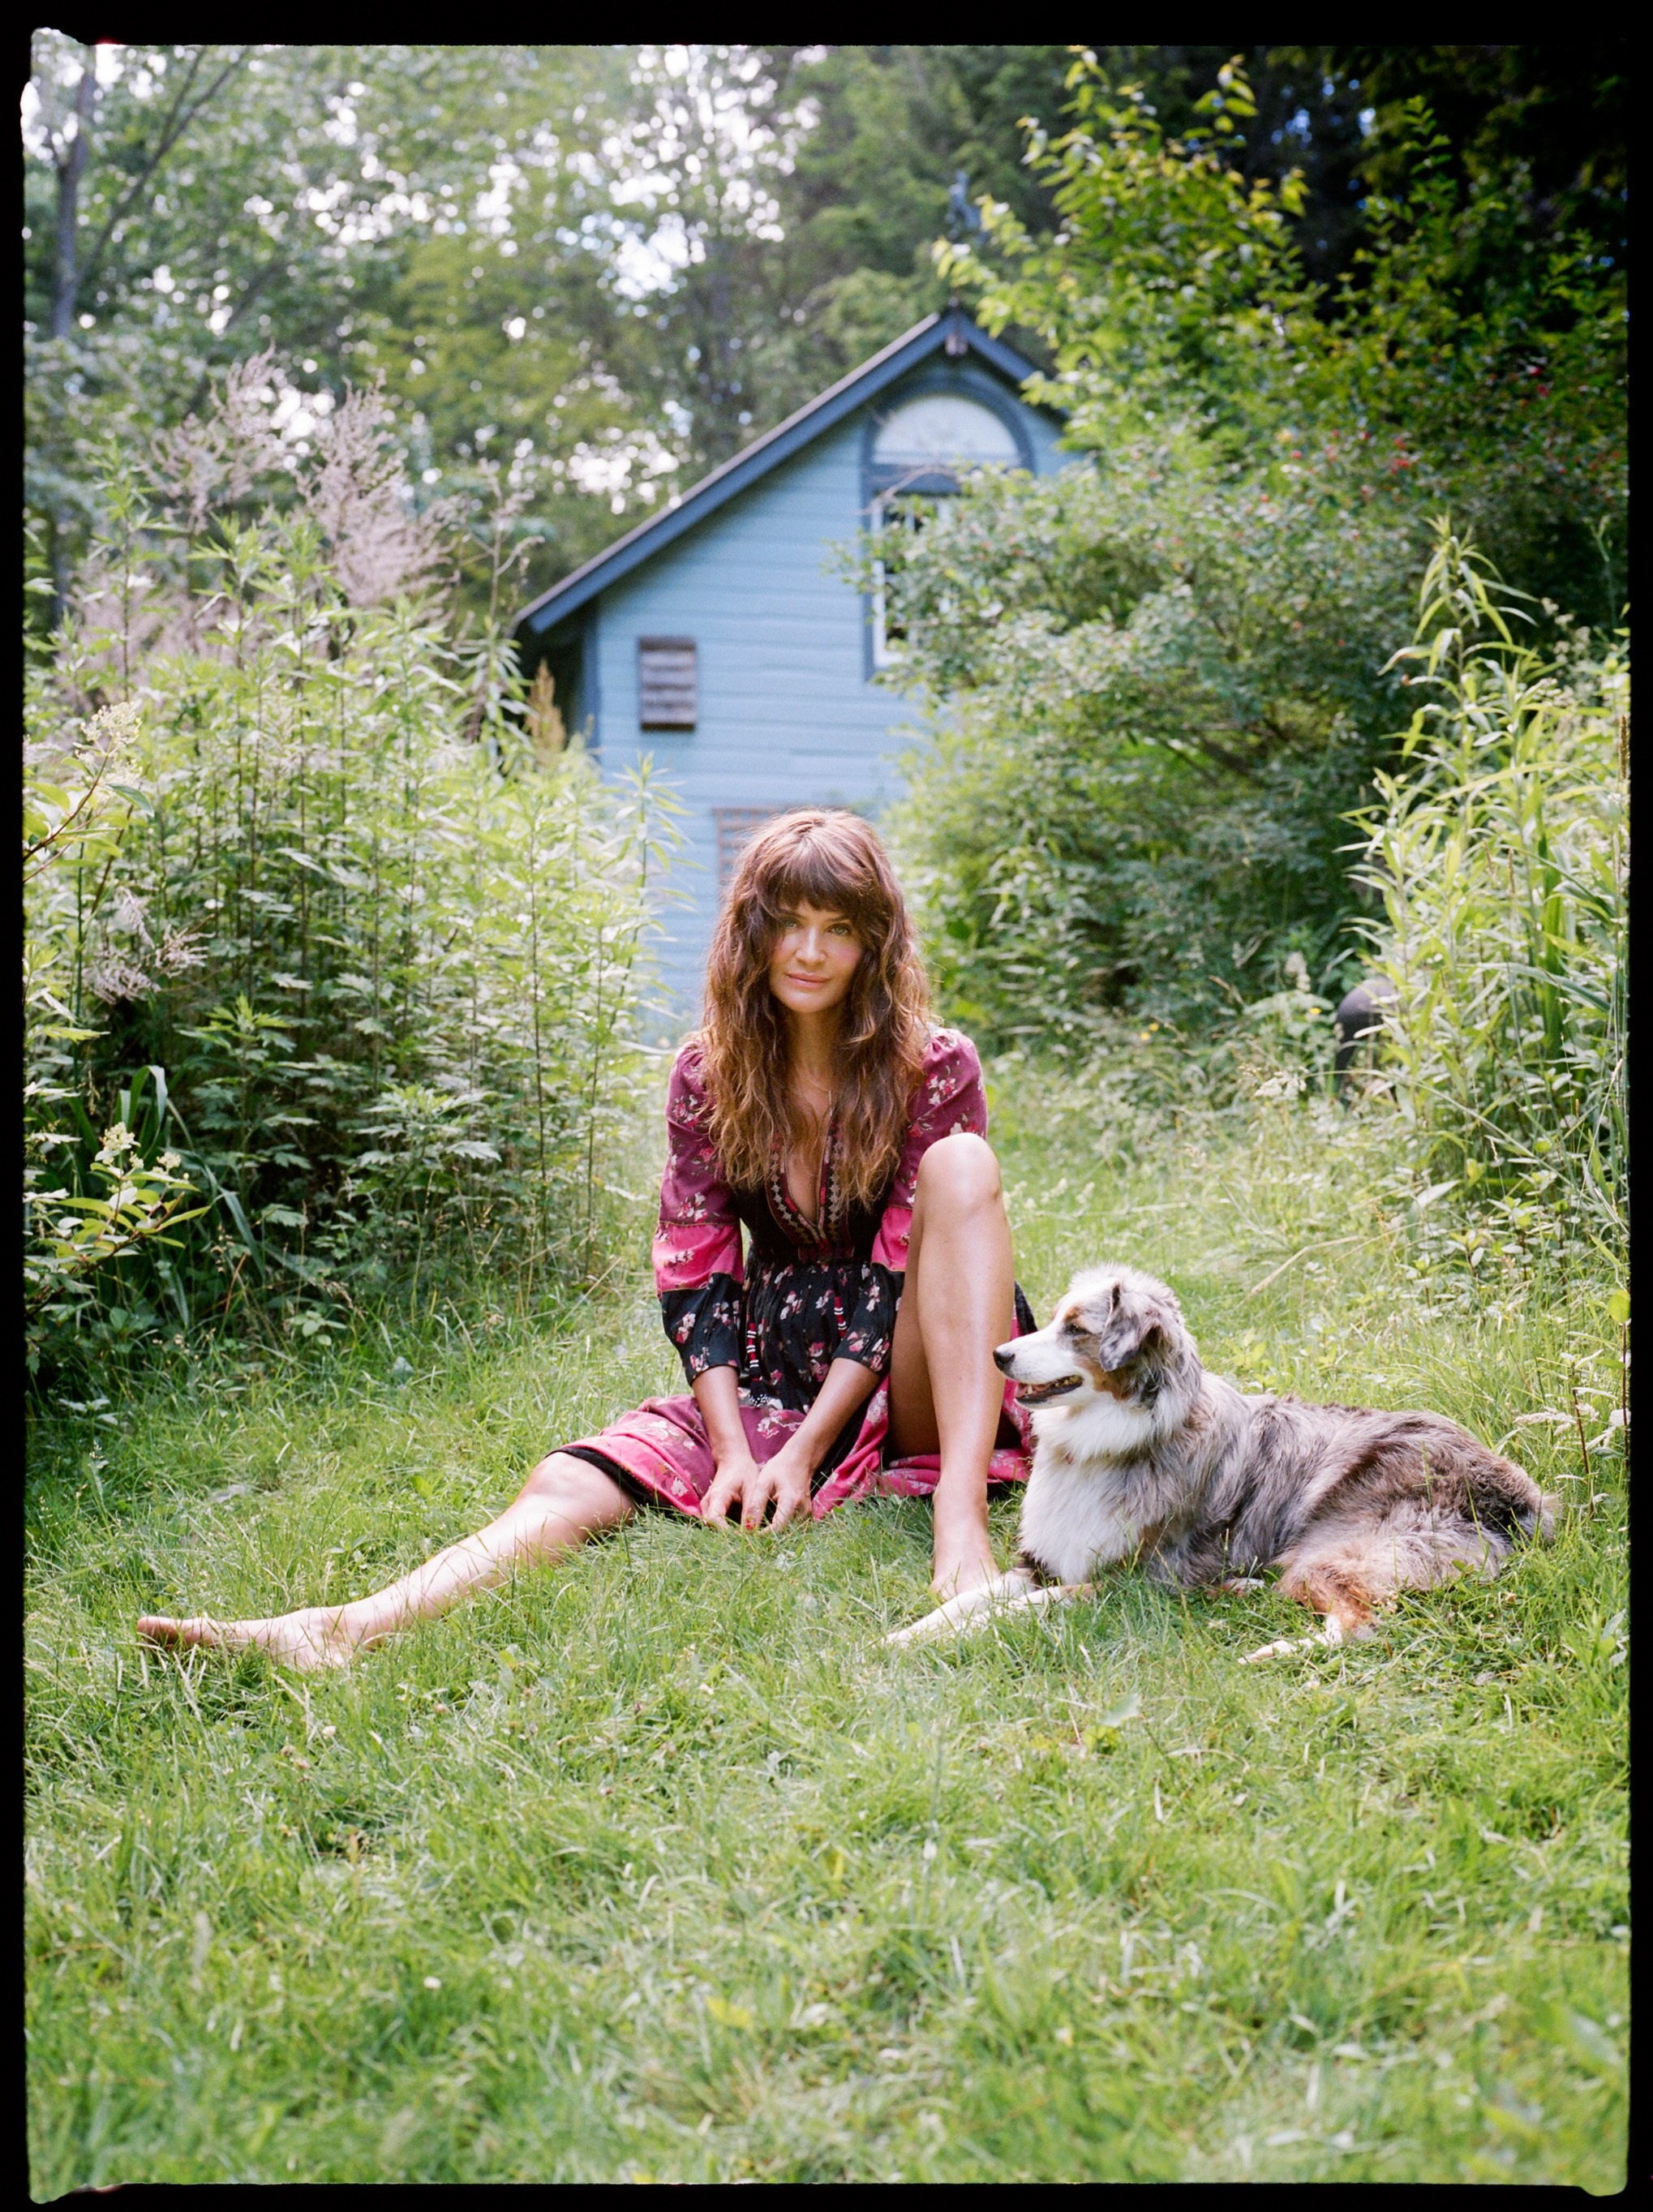 Helena Christensen Outdoors With Her Dog - Helena Christensen Outdoors With Her Dog